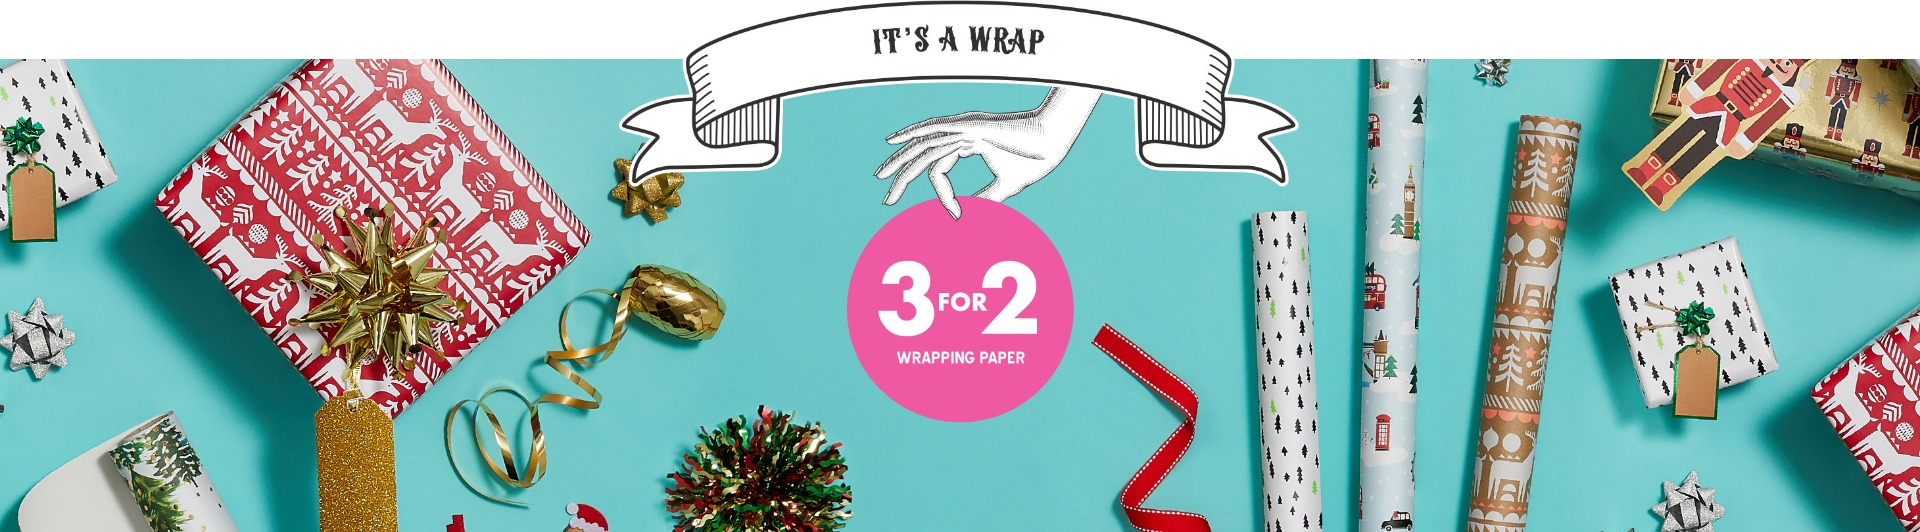 3 for 2 Christmas wrapping paper